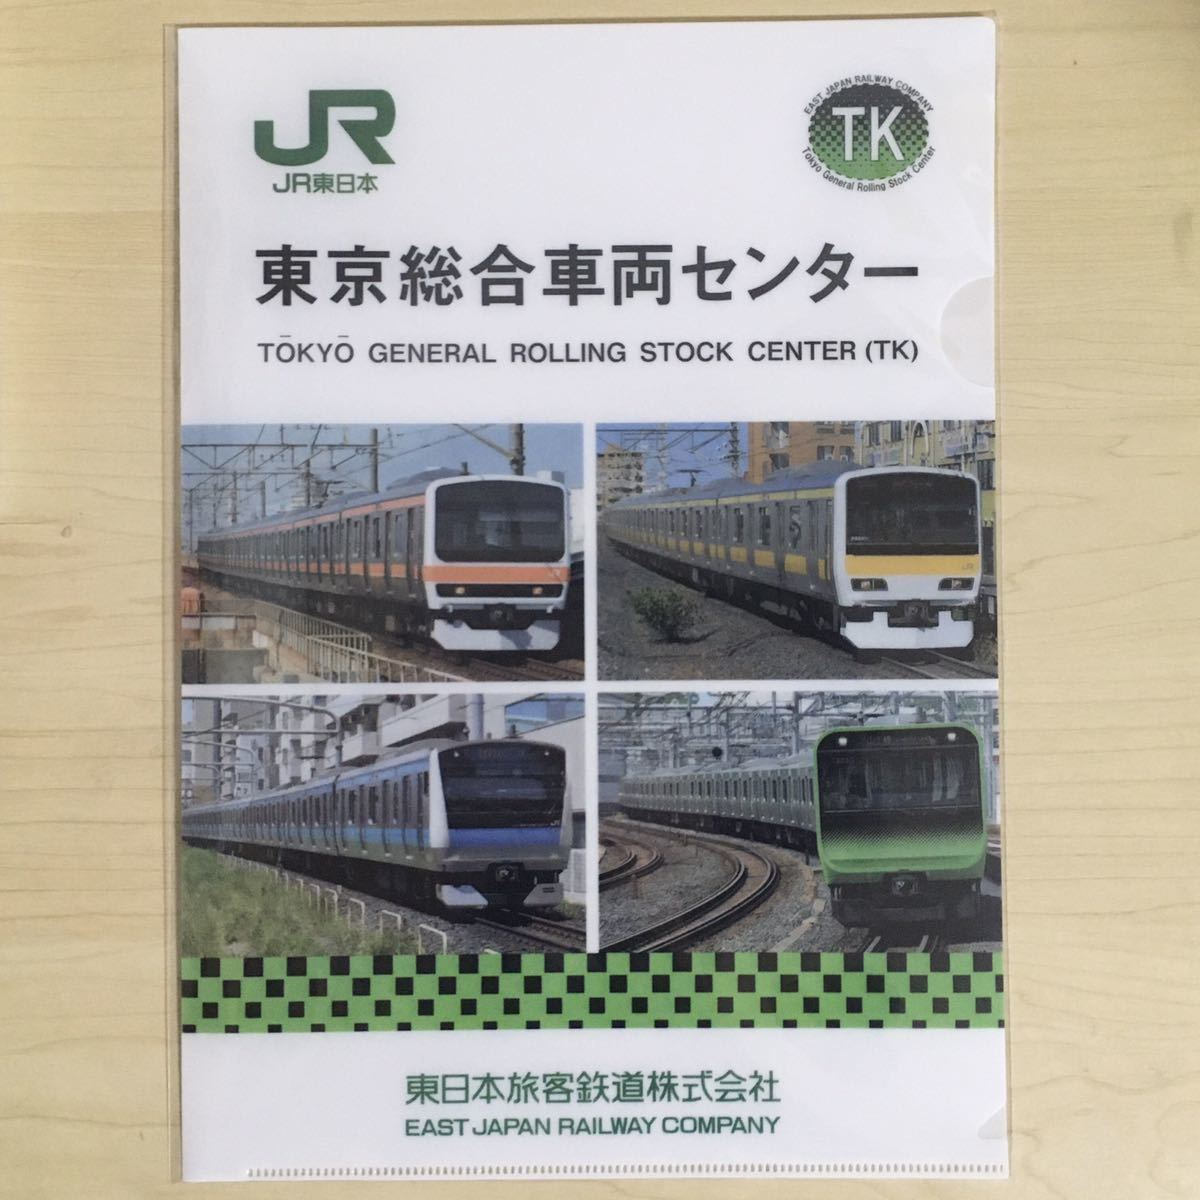 JR 東日本 東京総合車両センター 夏休みフェア 2019 クリアファイル 電車 鉄道 山手線